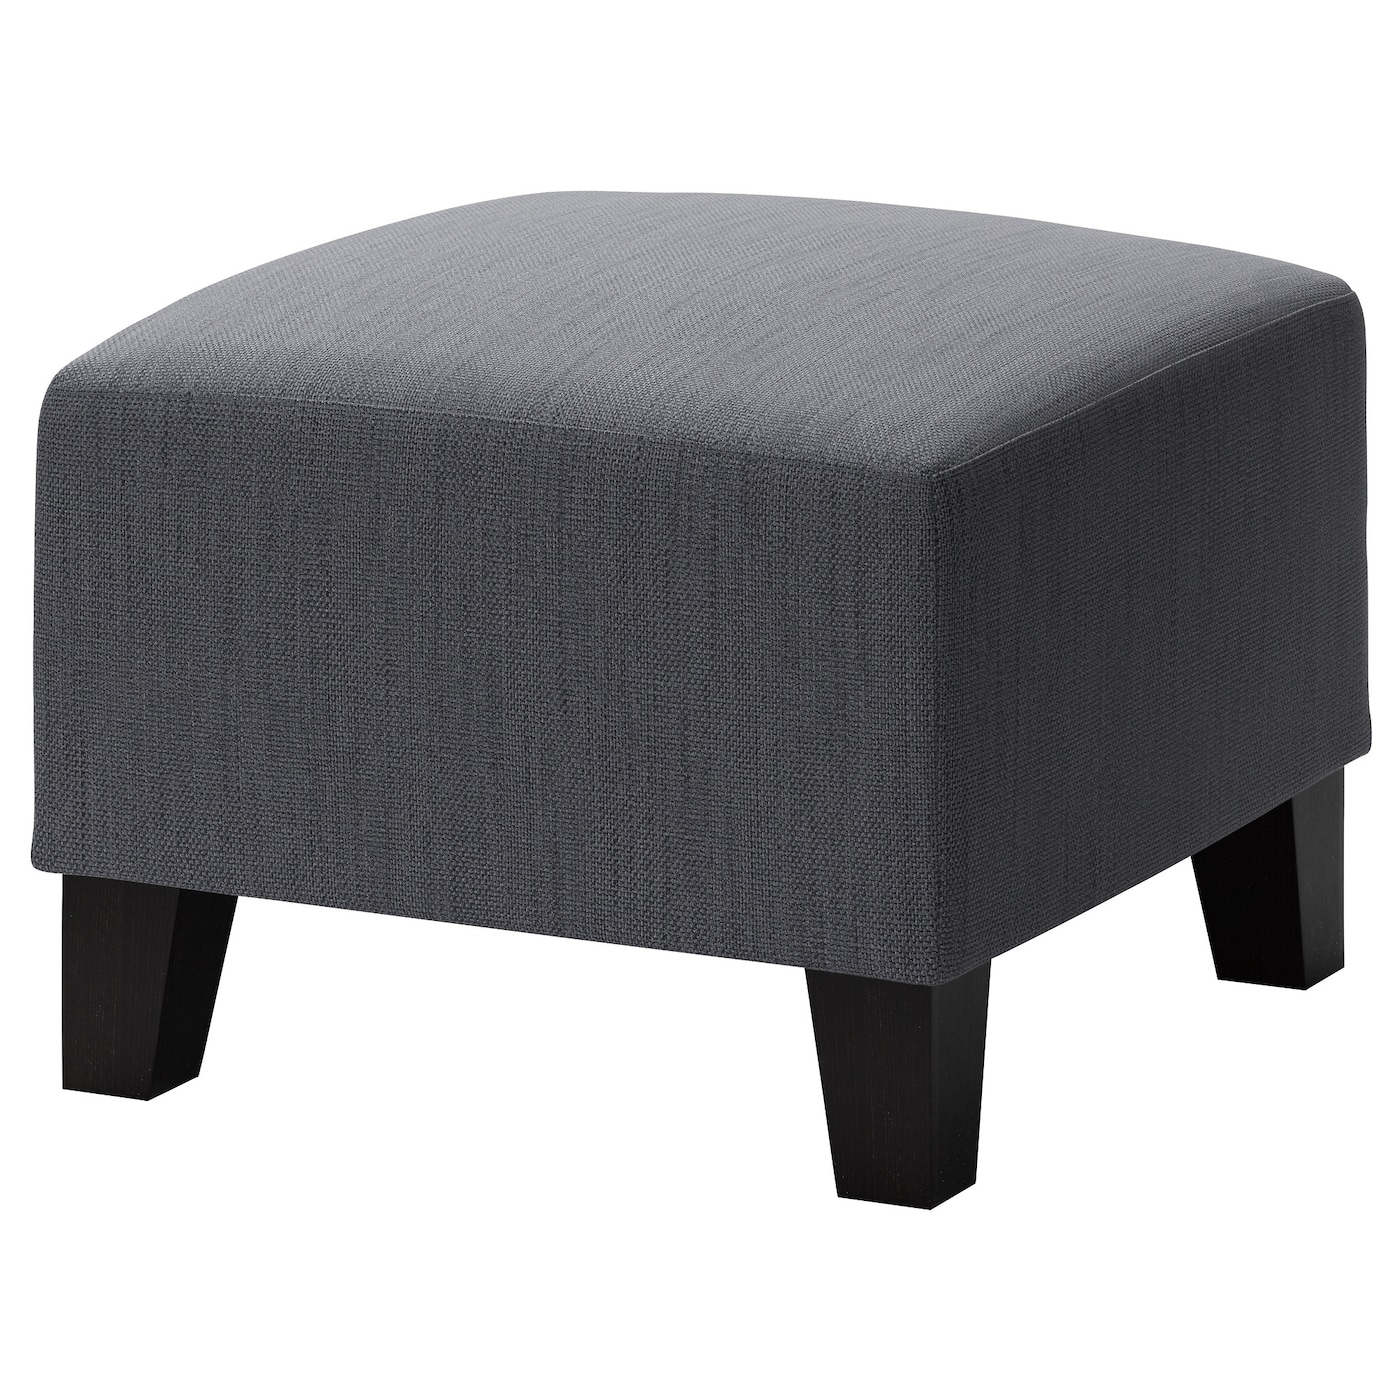 Great IKEA EKENÄS Footstool Hardwearing Cover Of Chenille Quality With A Slight  Sheen And A Soft Feel